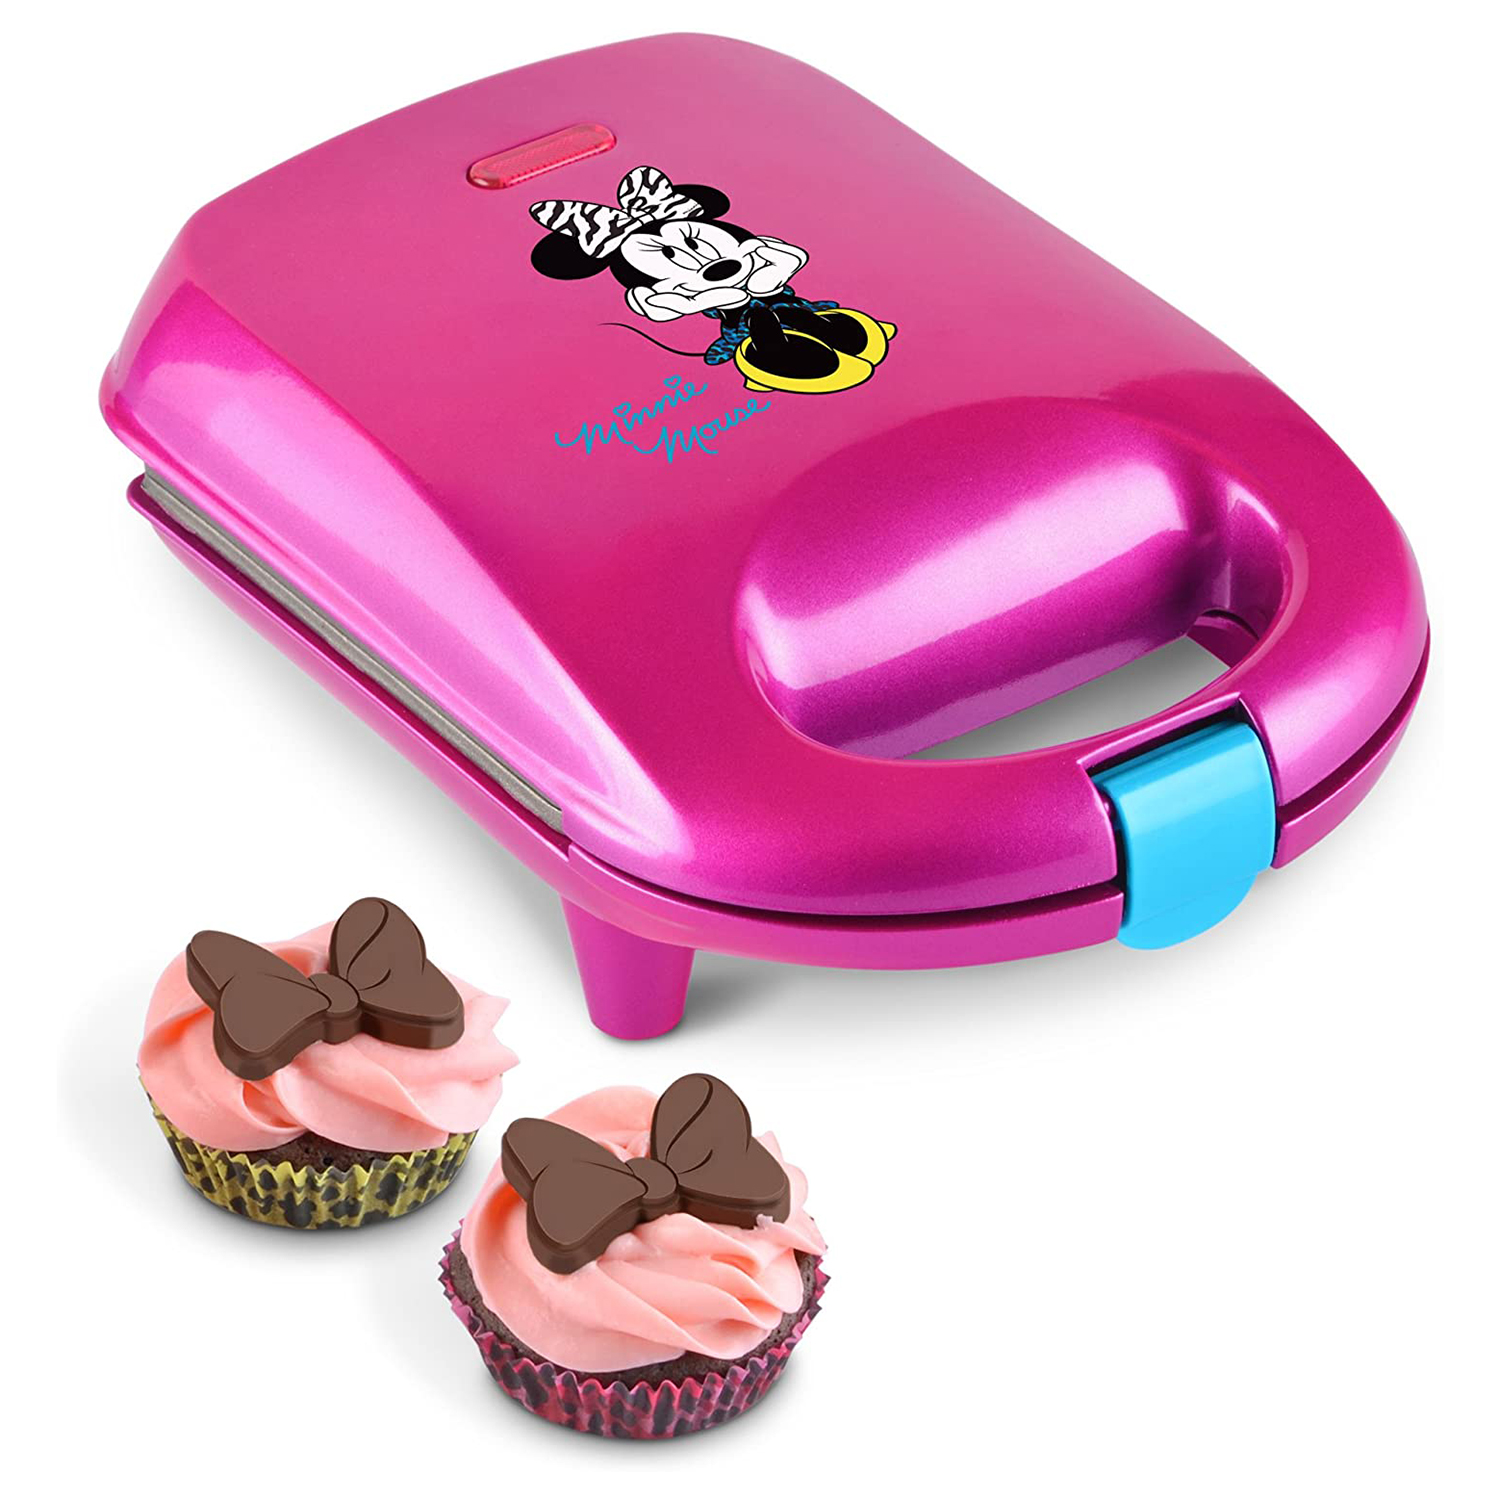 Kylie Jenner Inspired Mickey Waffle Maker on Amazon